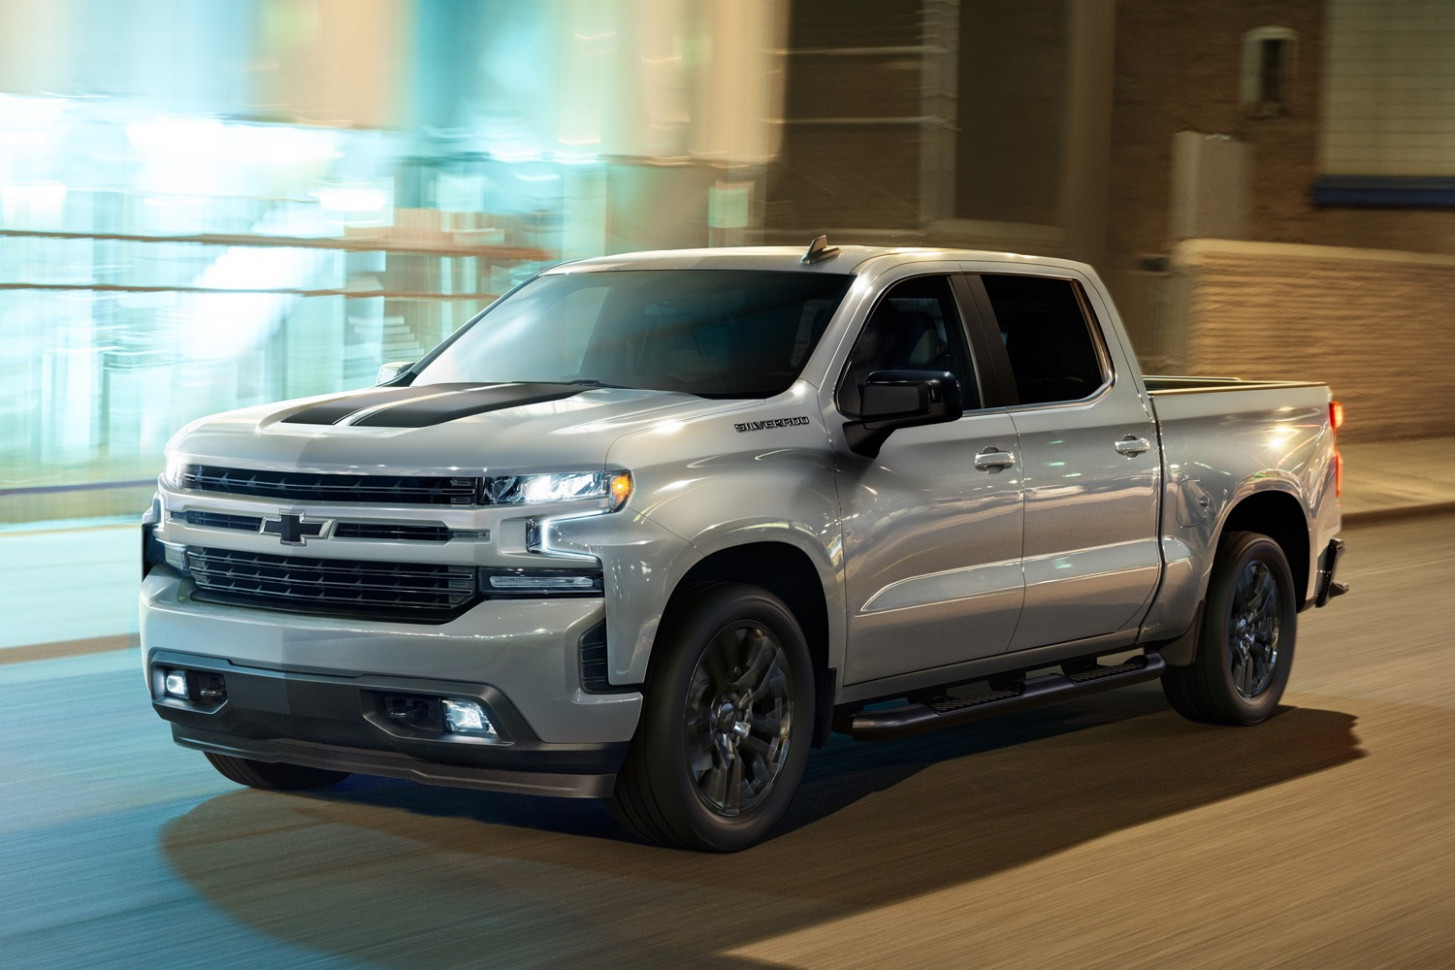 12 Silverado Rally Edition Officially Announced | GM Authority - 2020 chevrolet rst truck